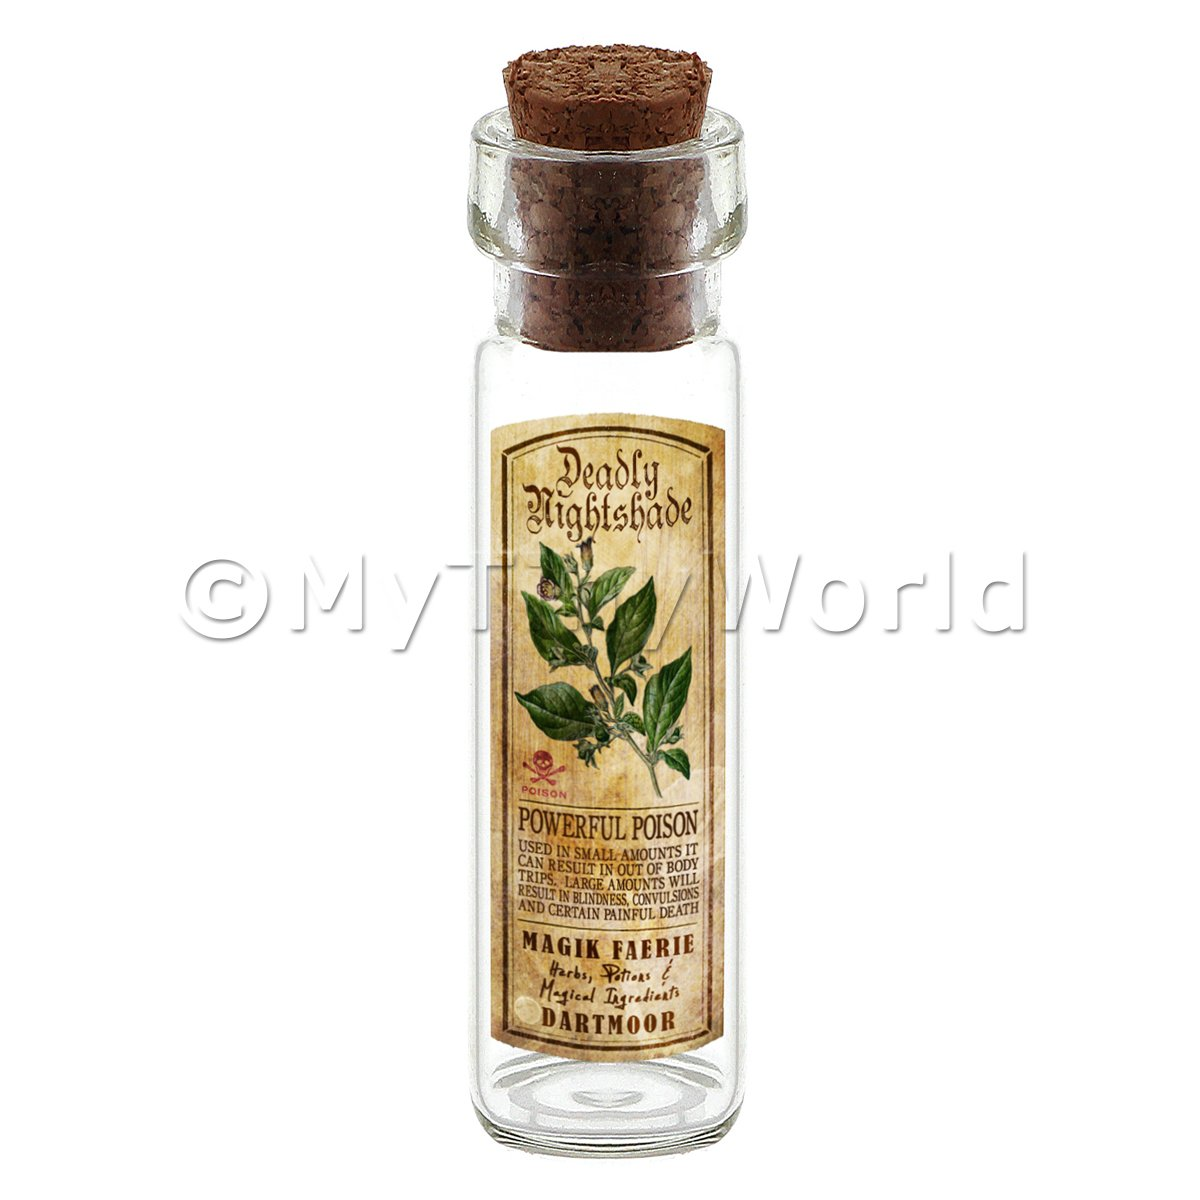 Dolls House Apothecary Nightshade Herb Long Colour Label And Bottle